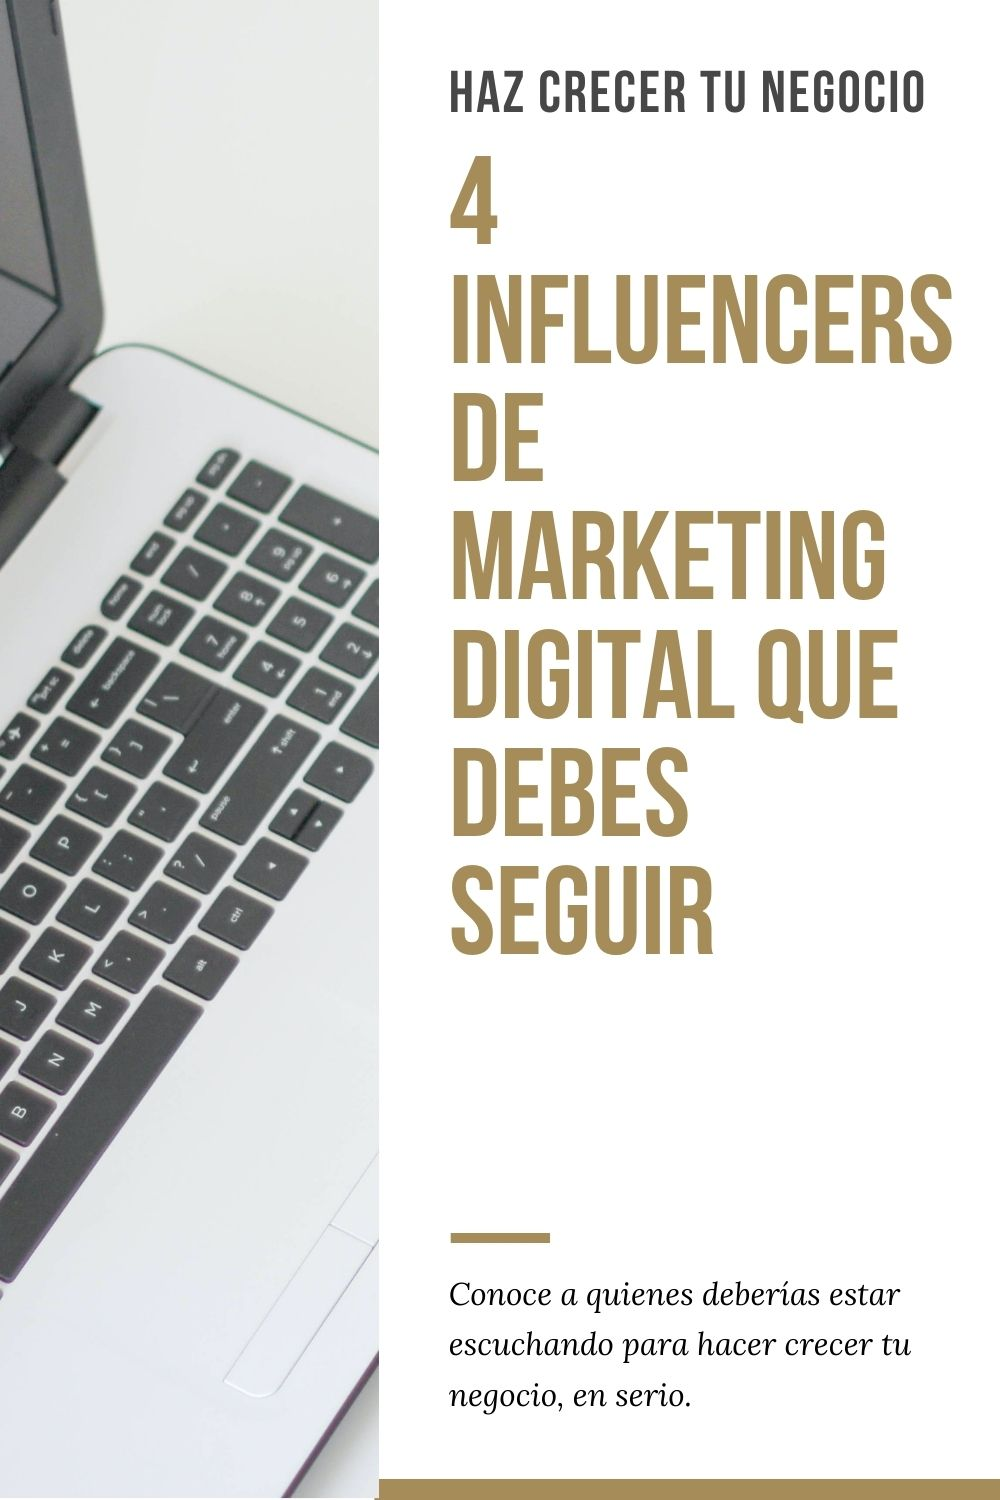 ifluencers de marketing